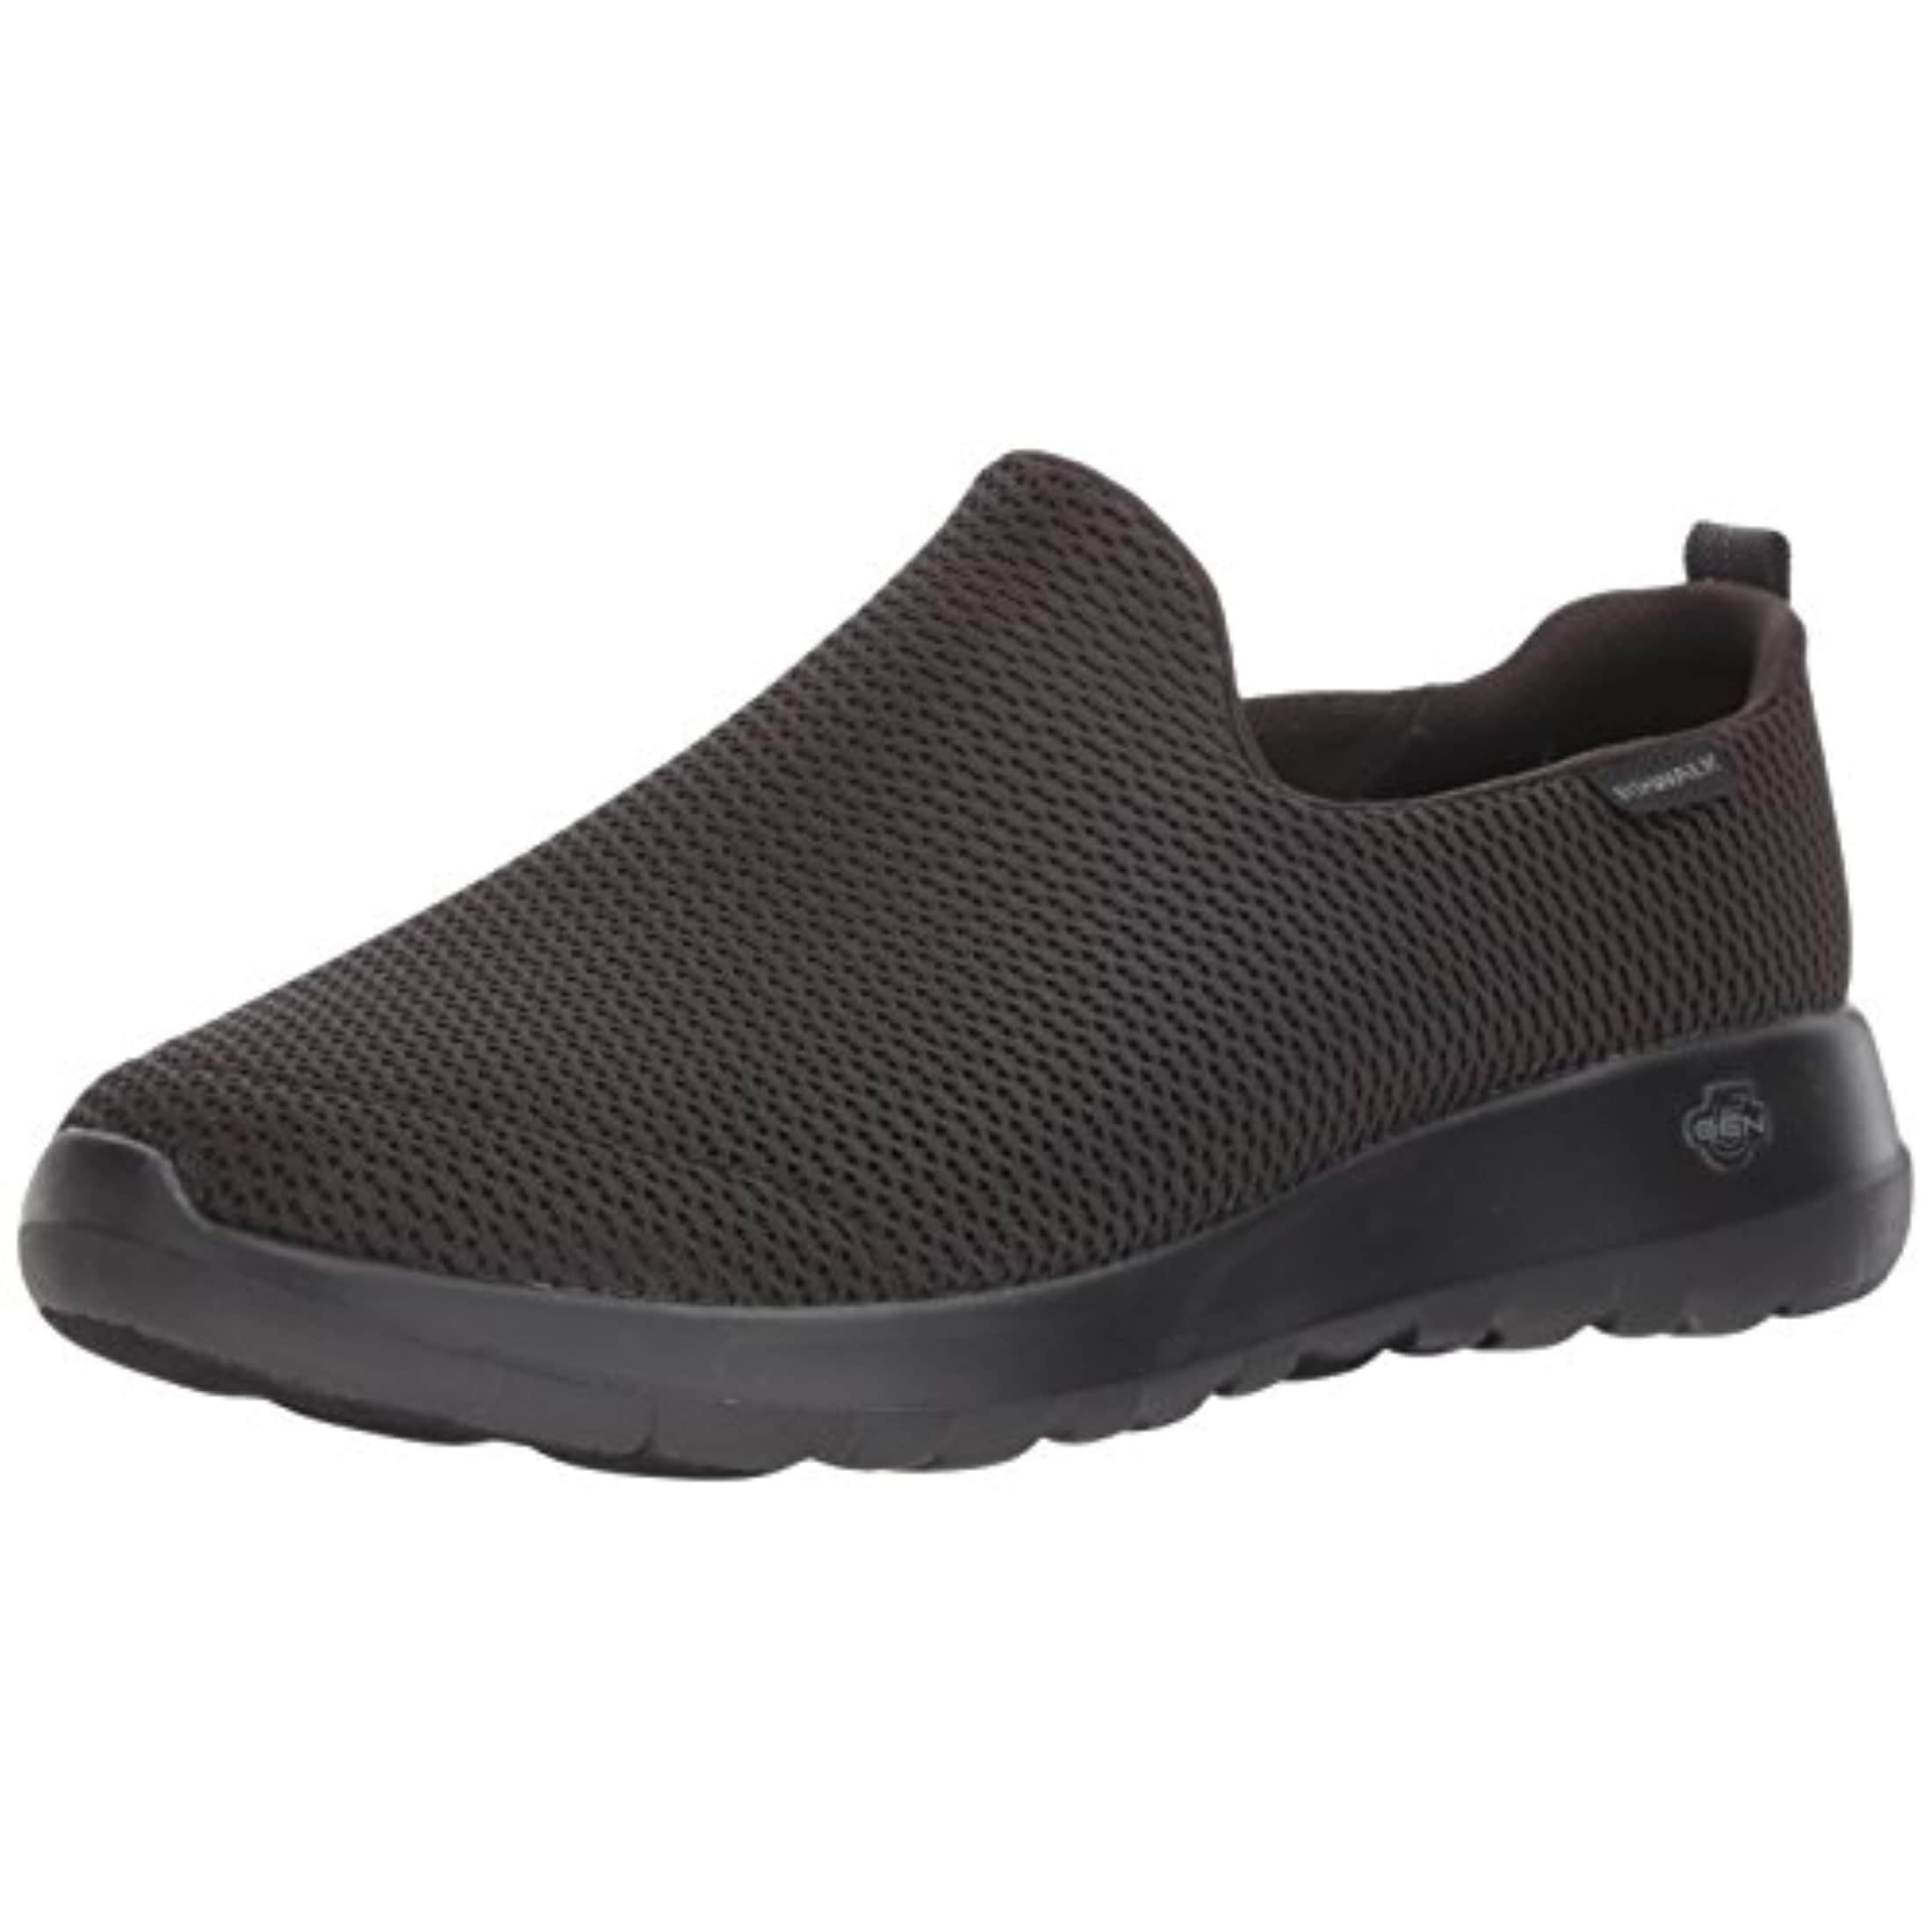 a0564aa5088b Shop Skechers Performance Men s Go Walk Max Sneaker - Free Shipping Today -  Overstock - 27121474